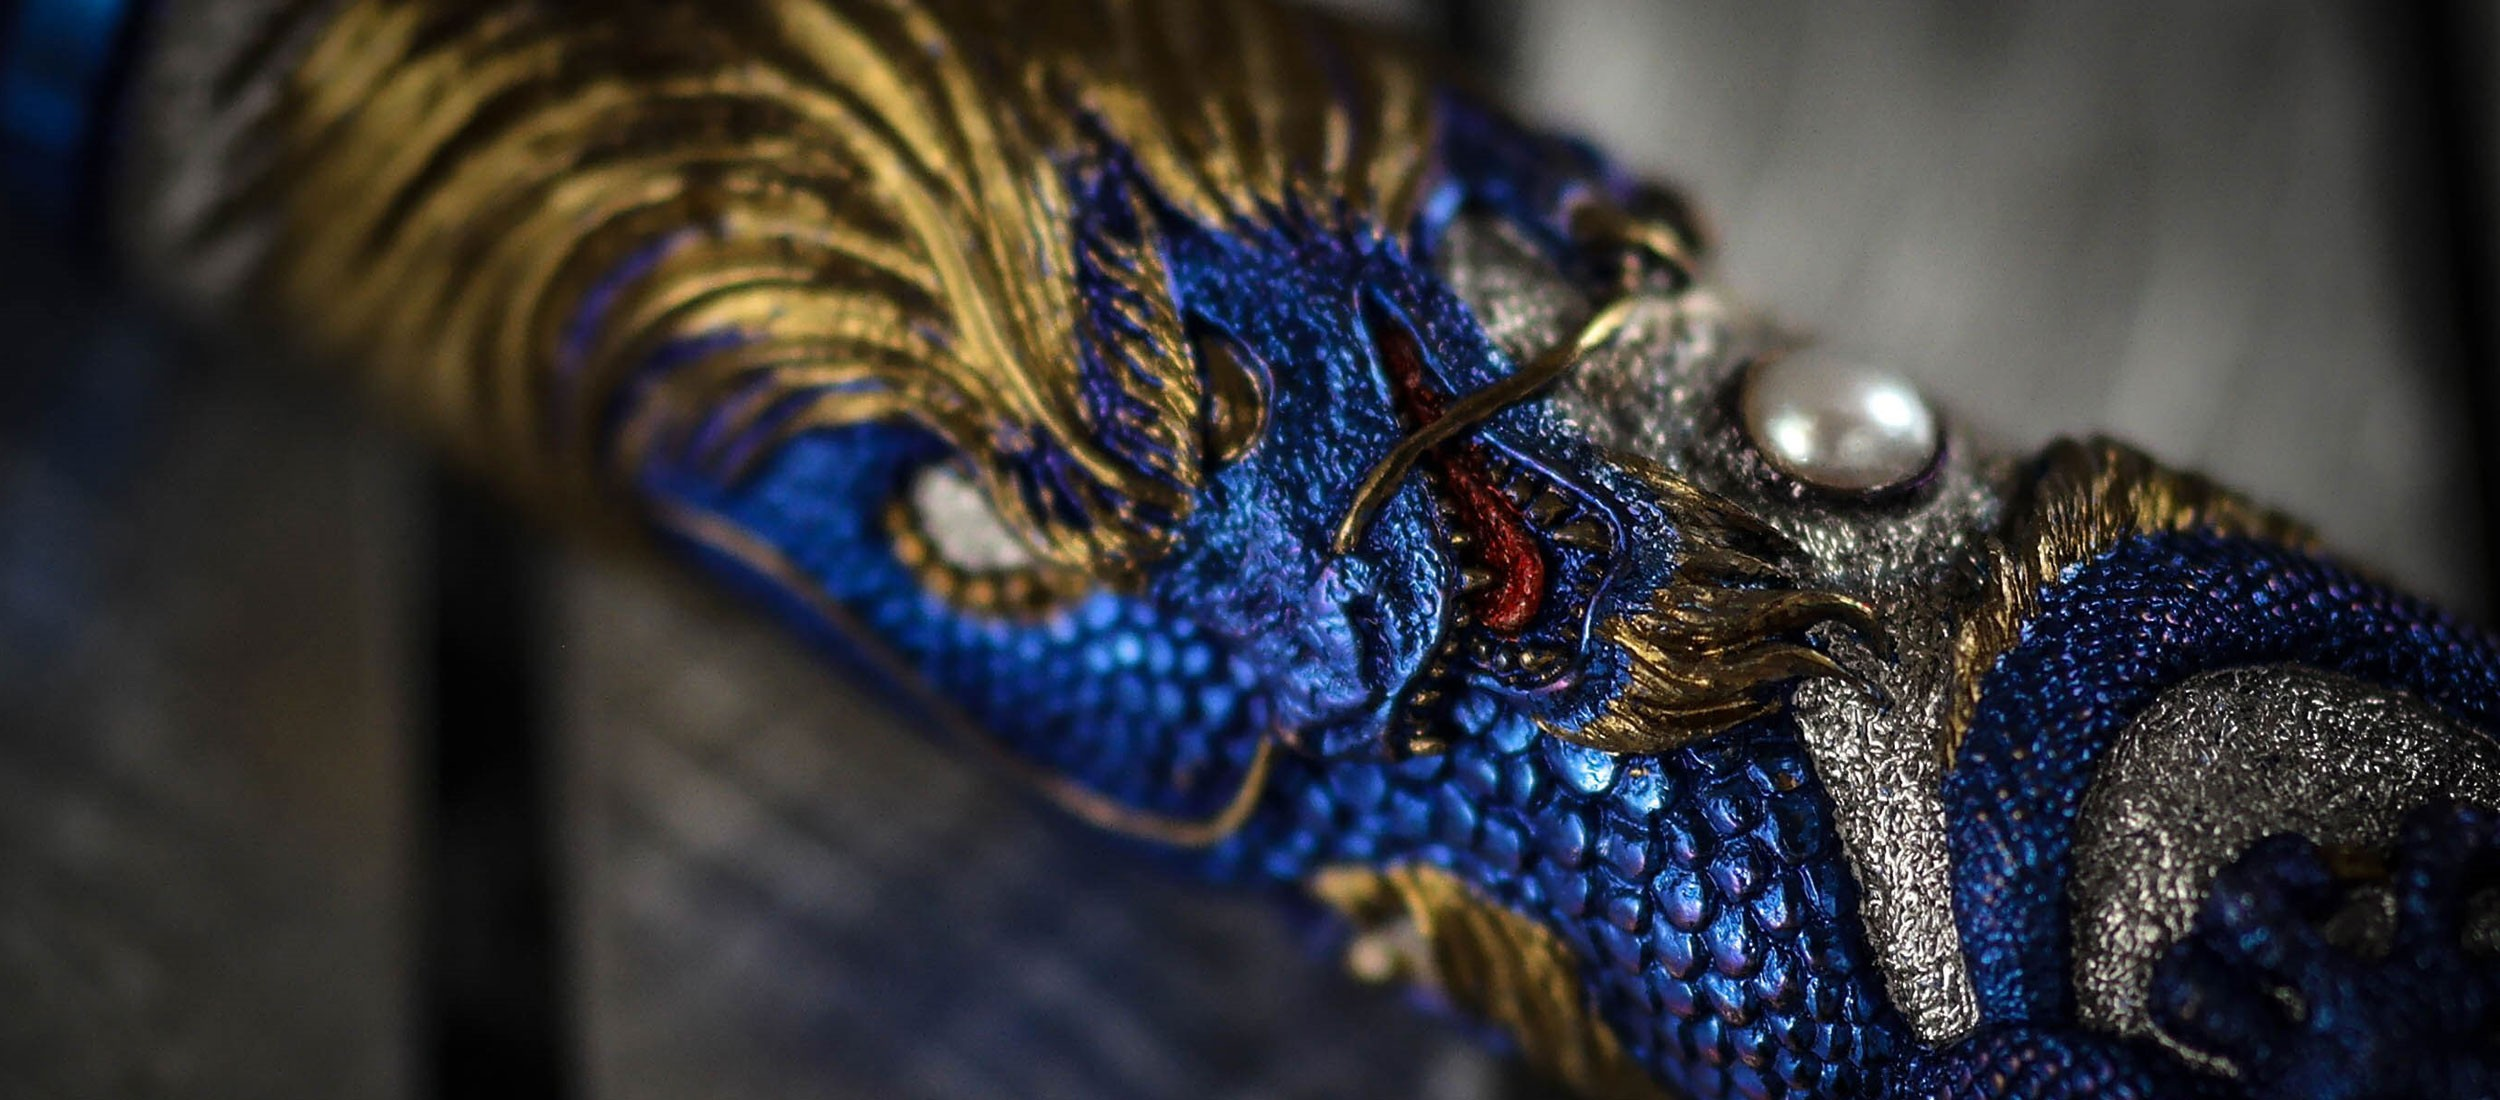 Blue Dragon 1 of 1